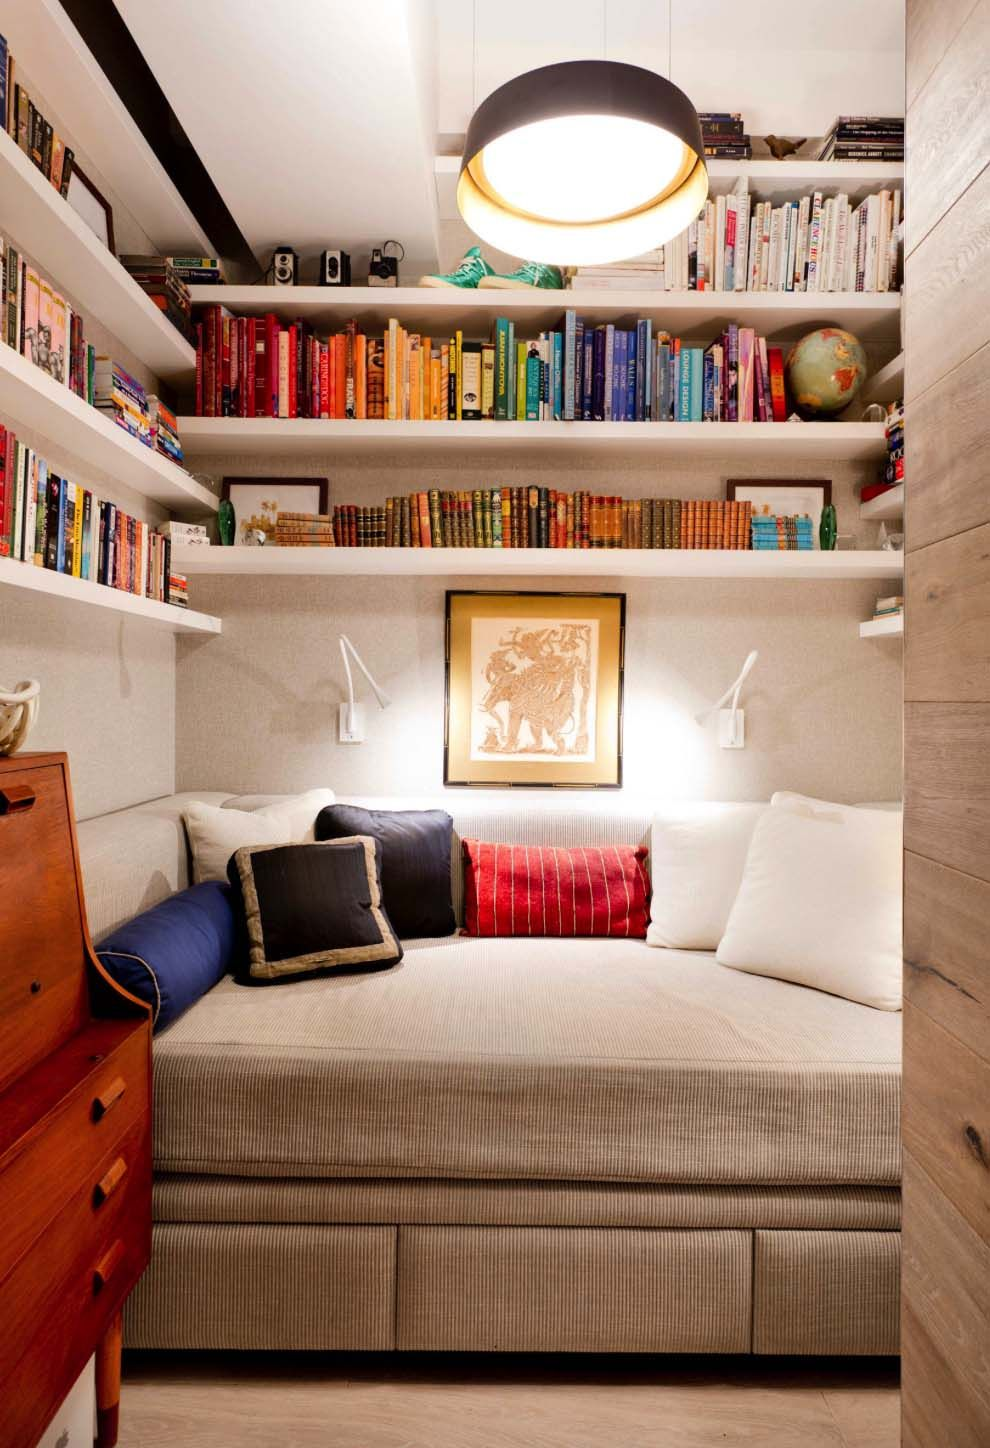 Photo of 30 Incredibly cozy built-in reading nooks designed for lounging